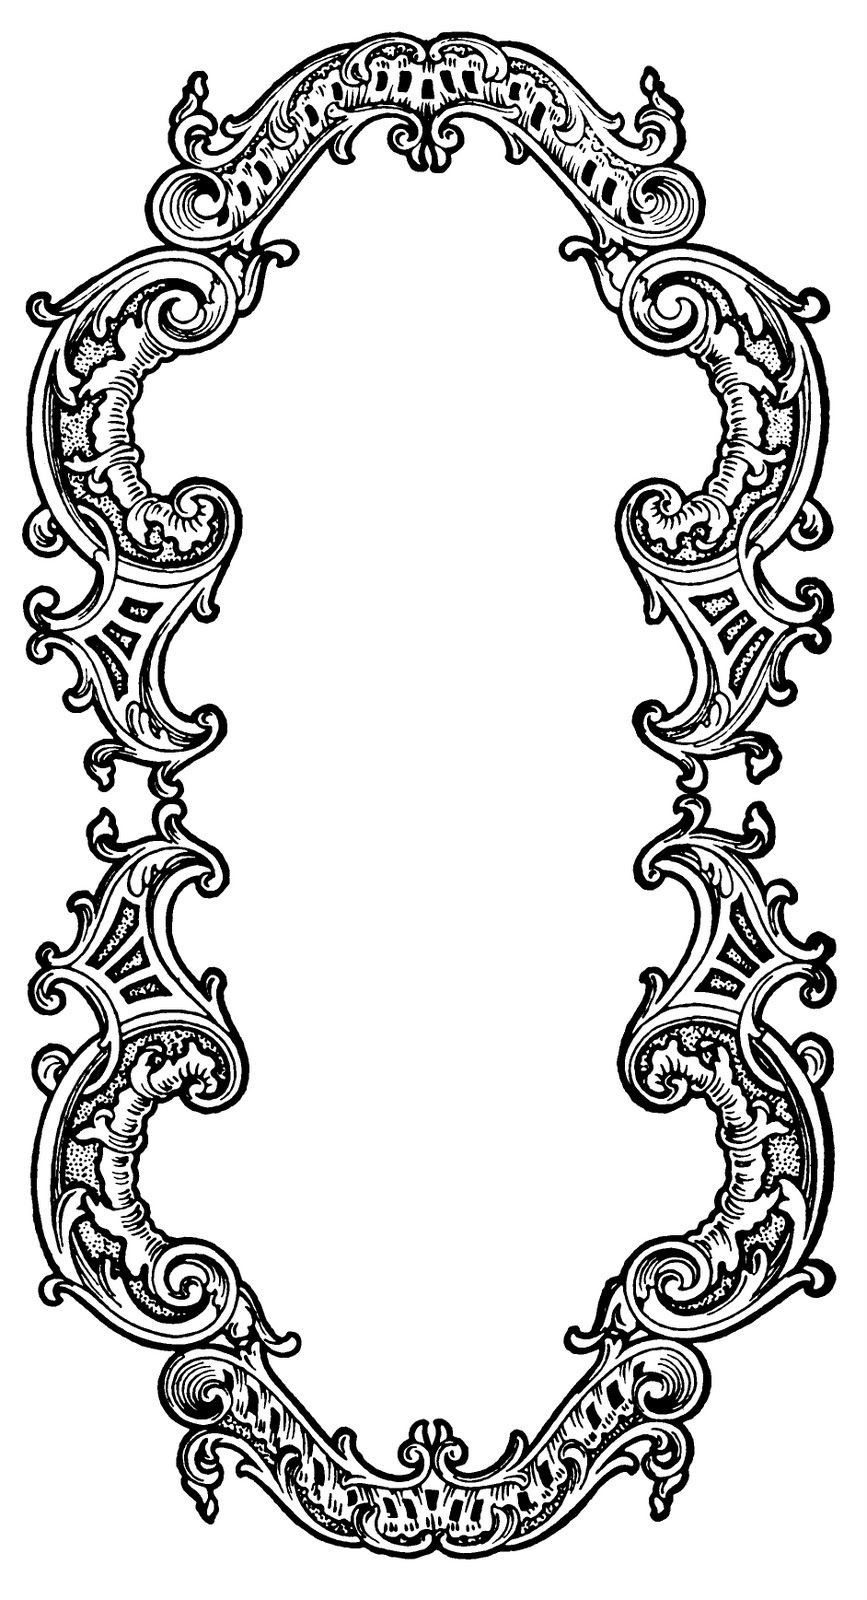 Detailed, ornate oval frame | Patterns and Motifs 2 | Pinterest ...